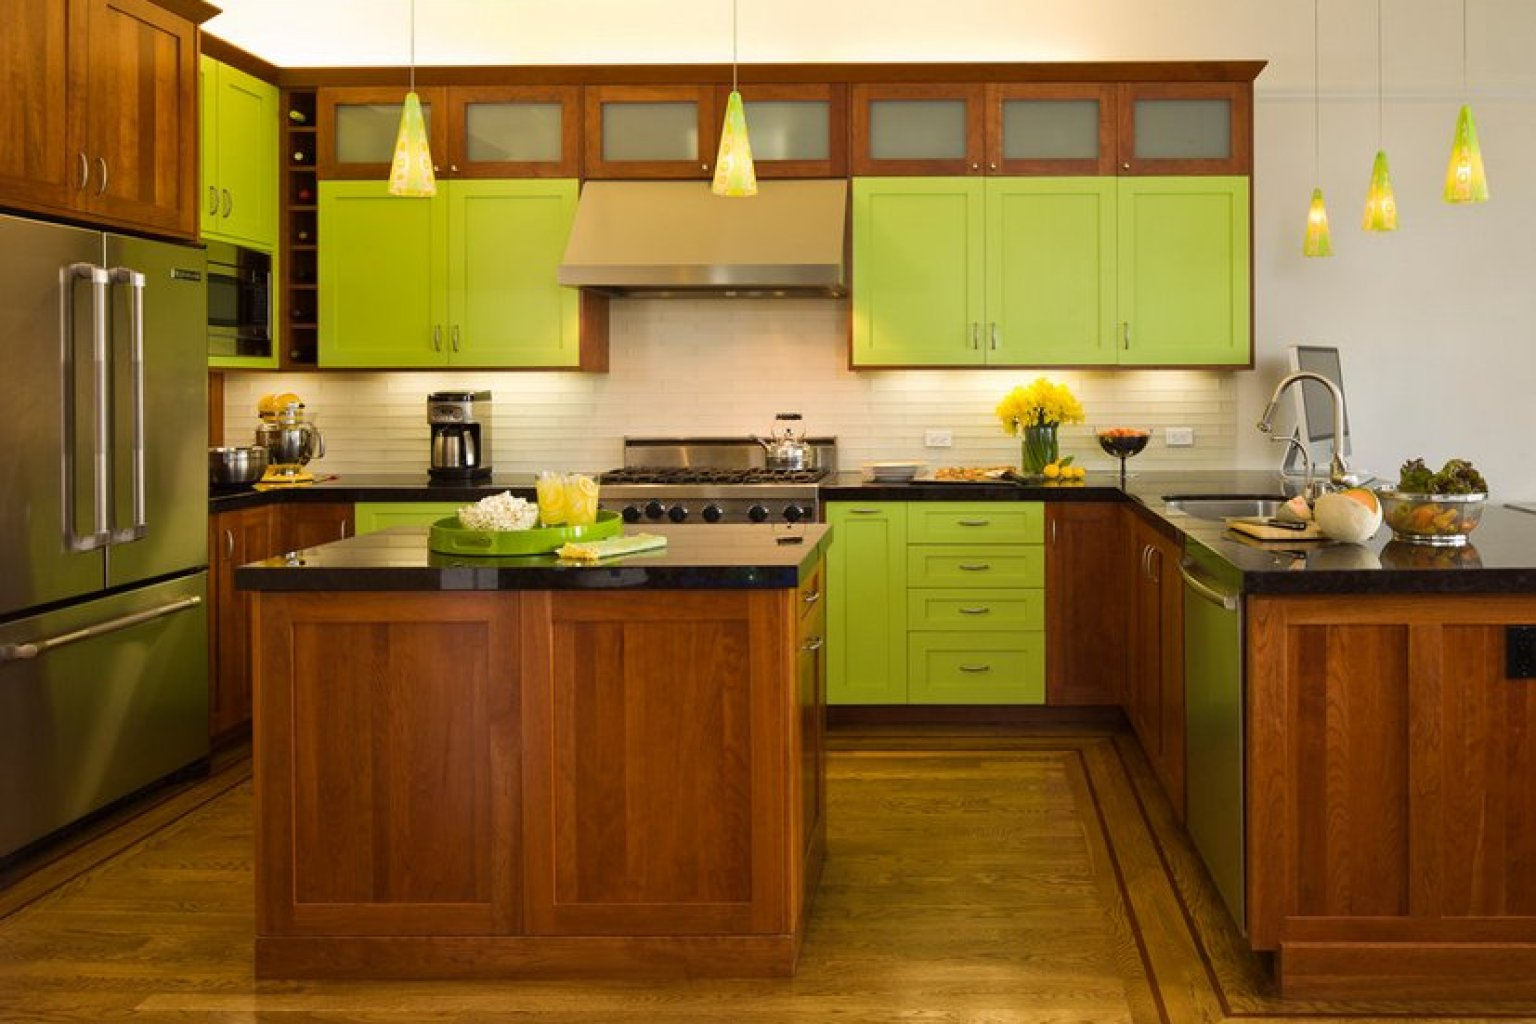 8 Good Reasons Why You Should Paint Everything Lime Green Photos